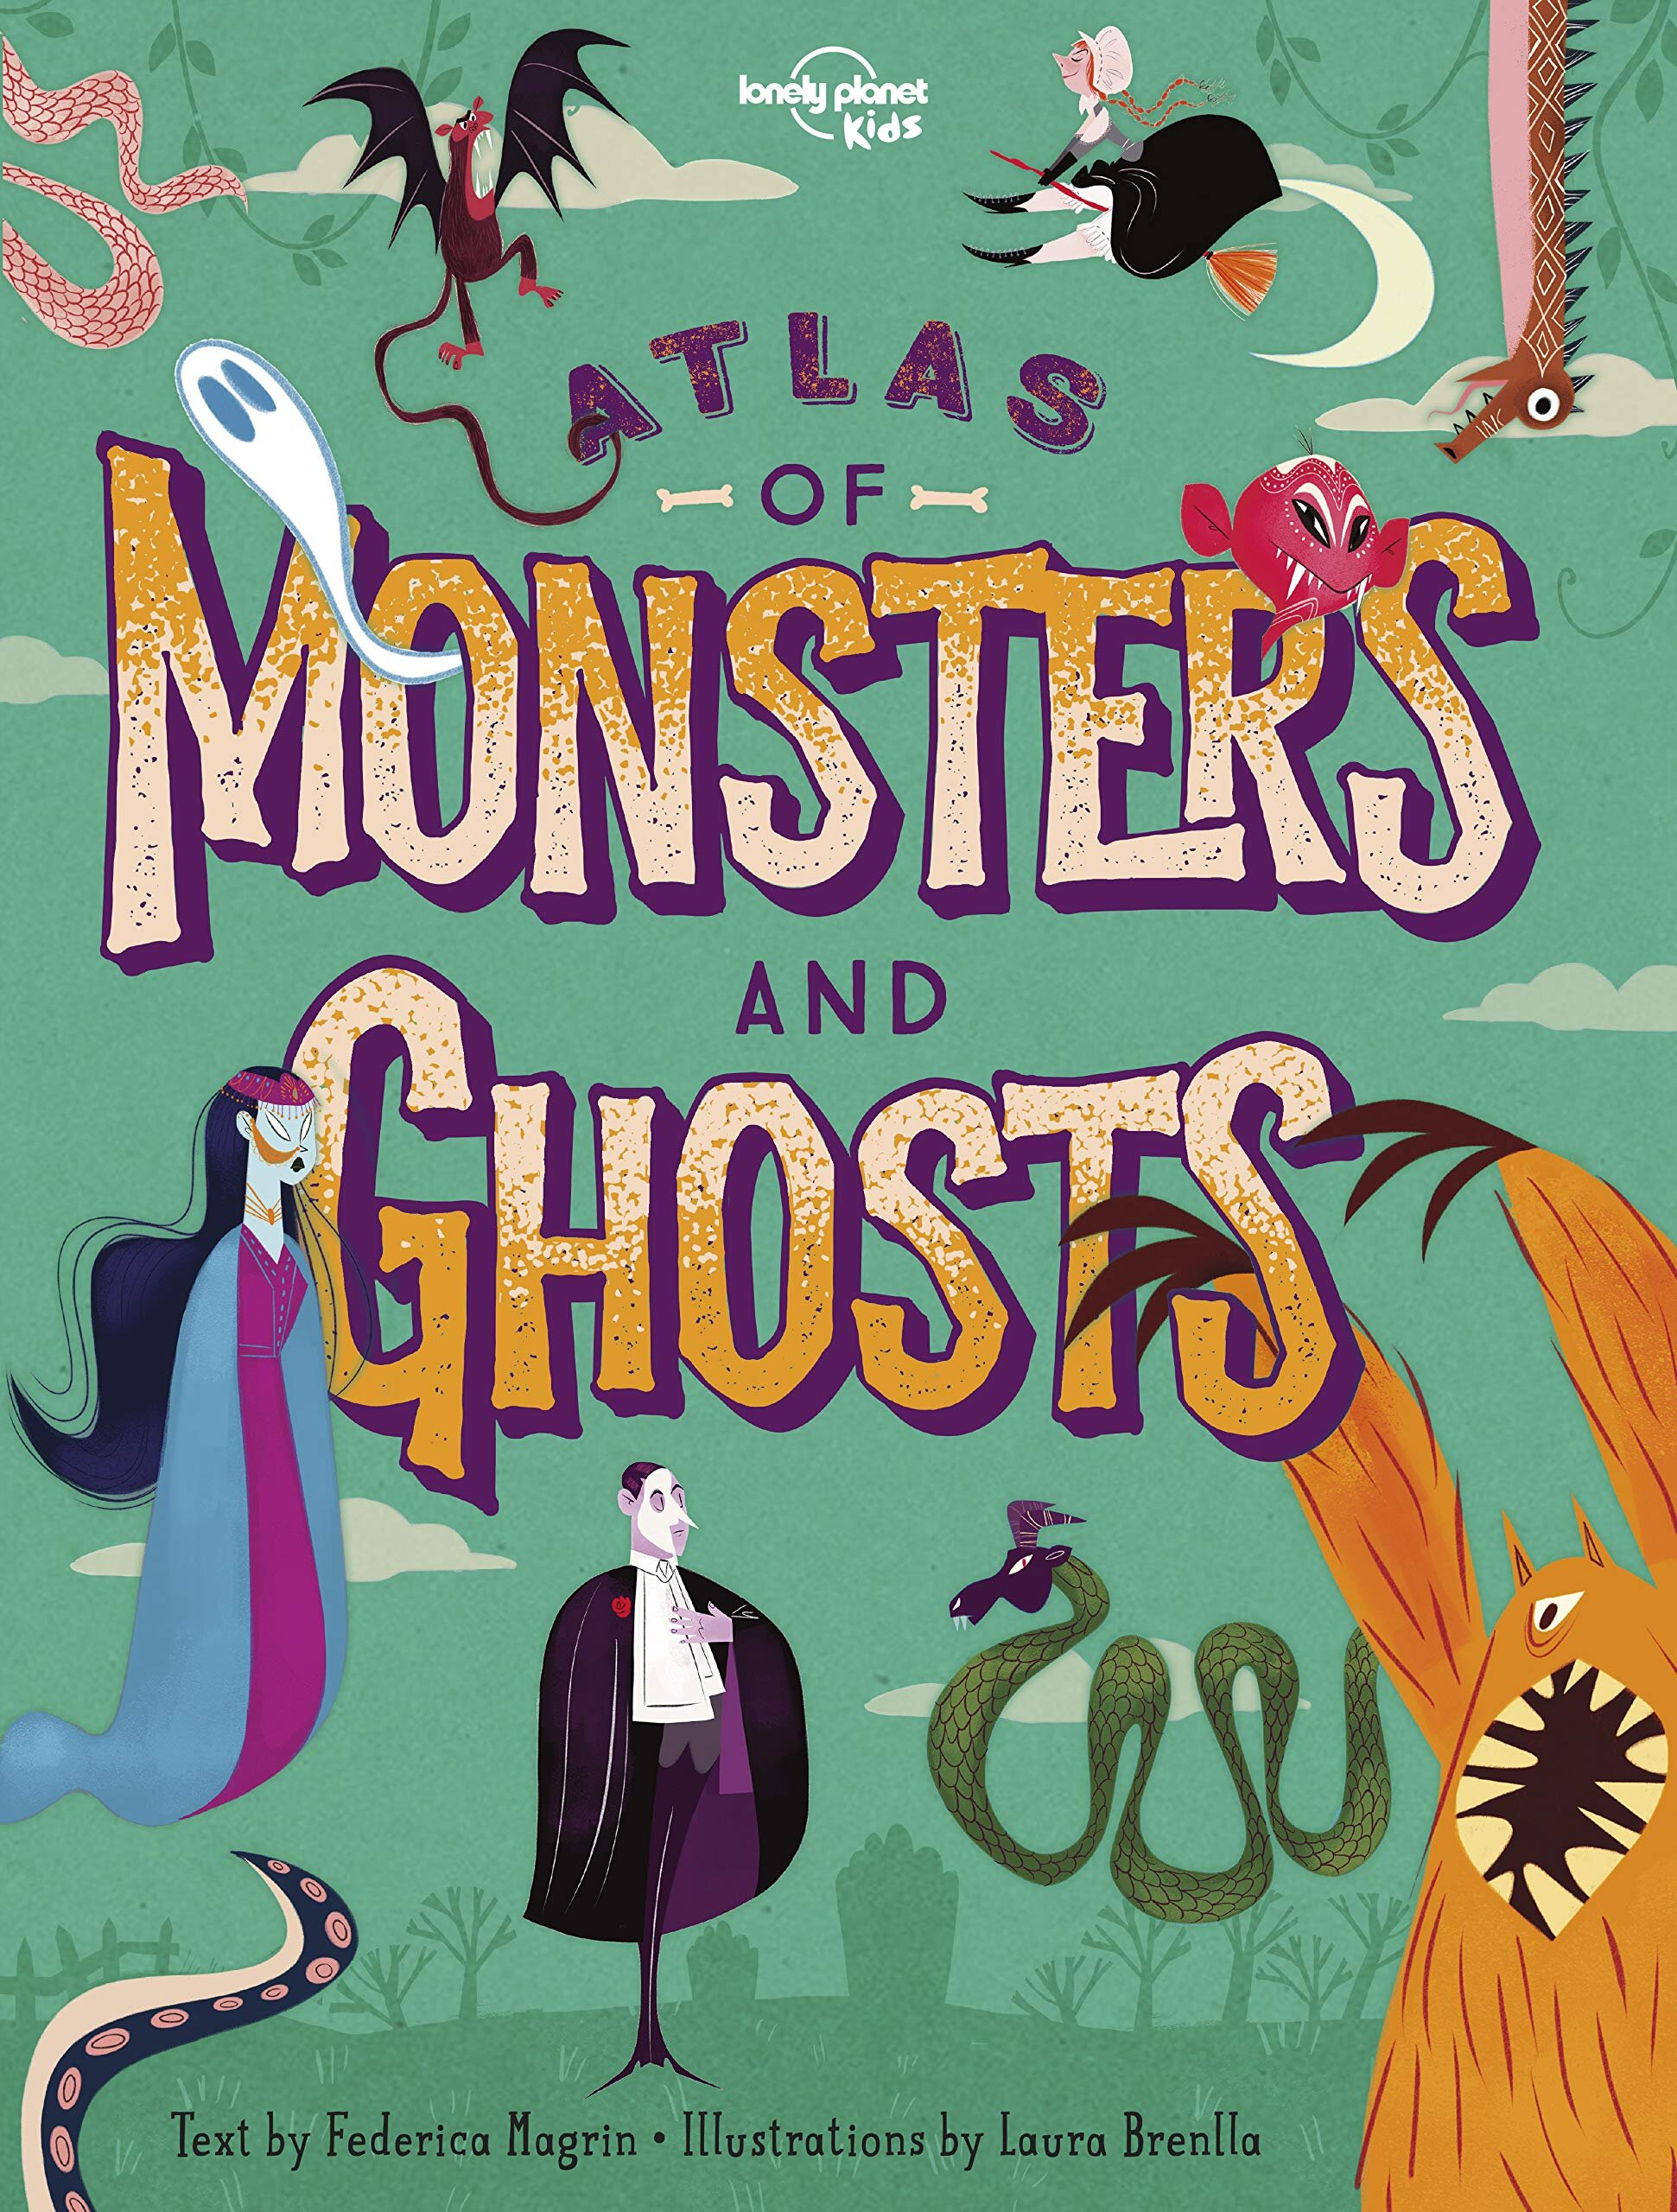 Best Halloween Picture Books of 2019 - Atlas of Monsters and Ghosts.jpg